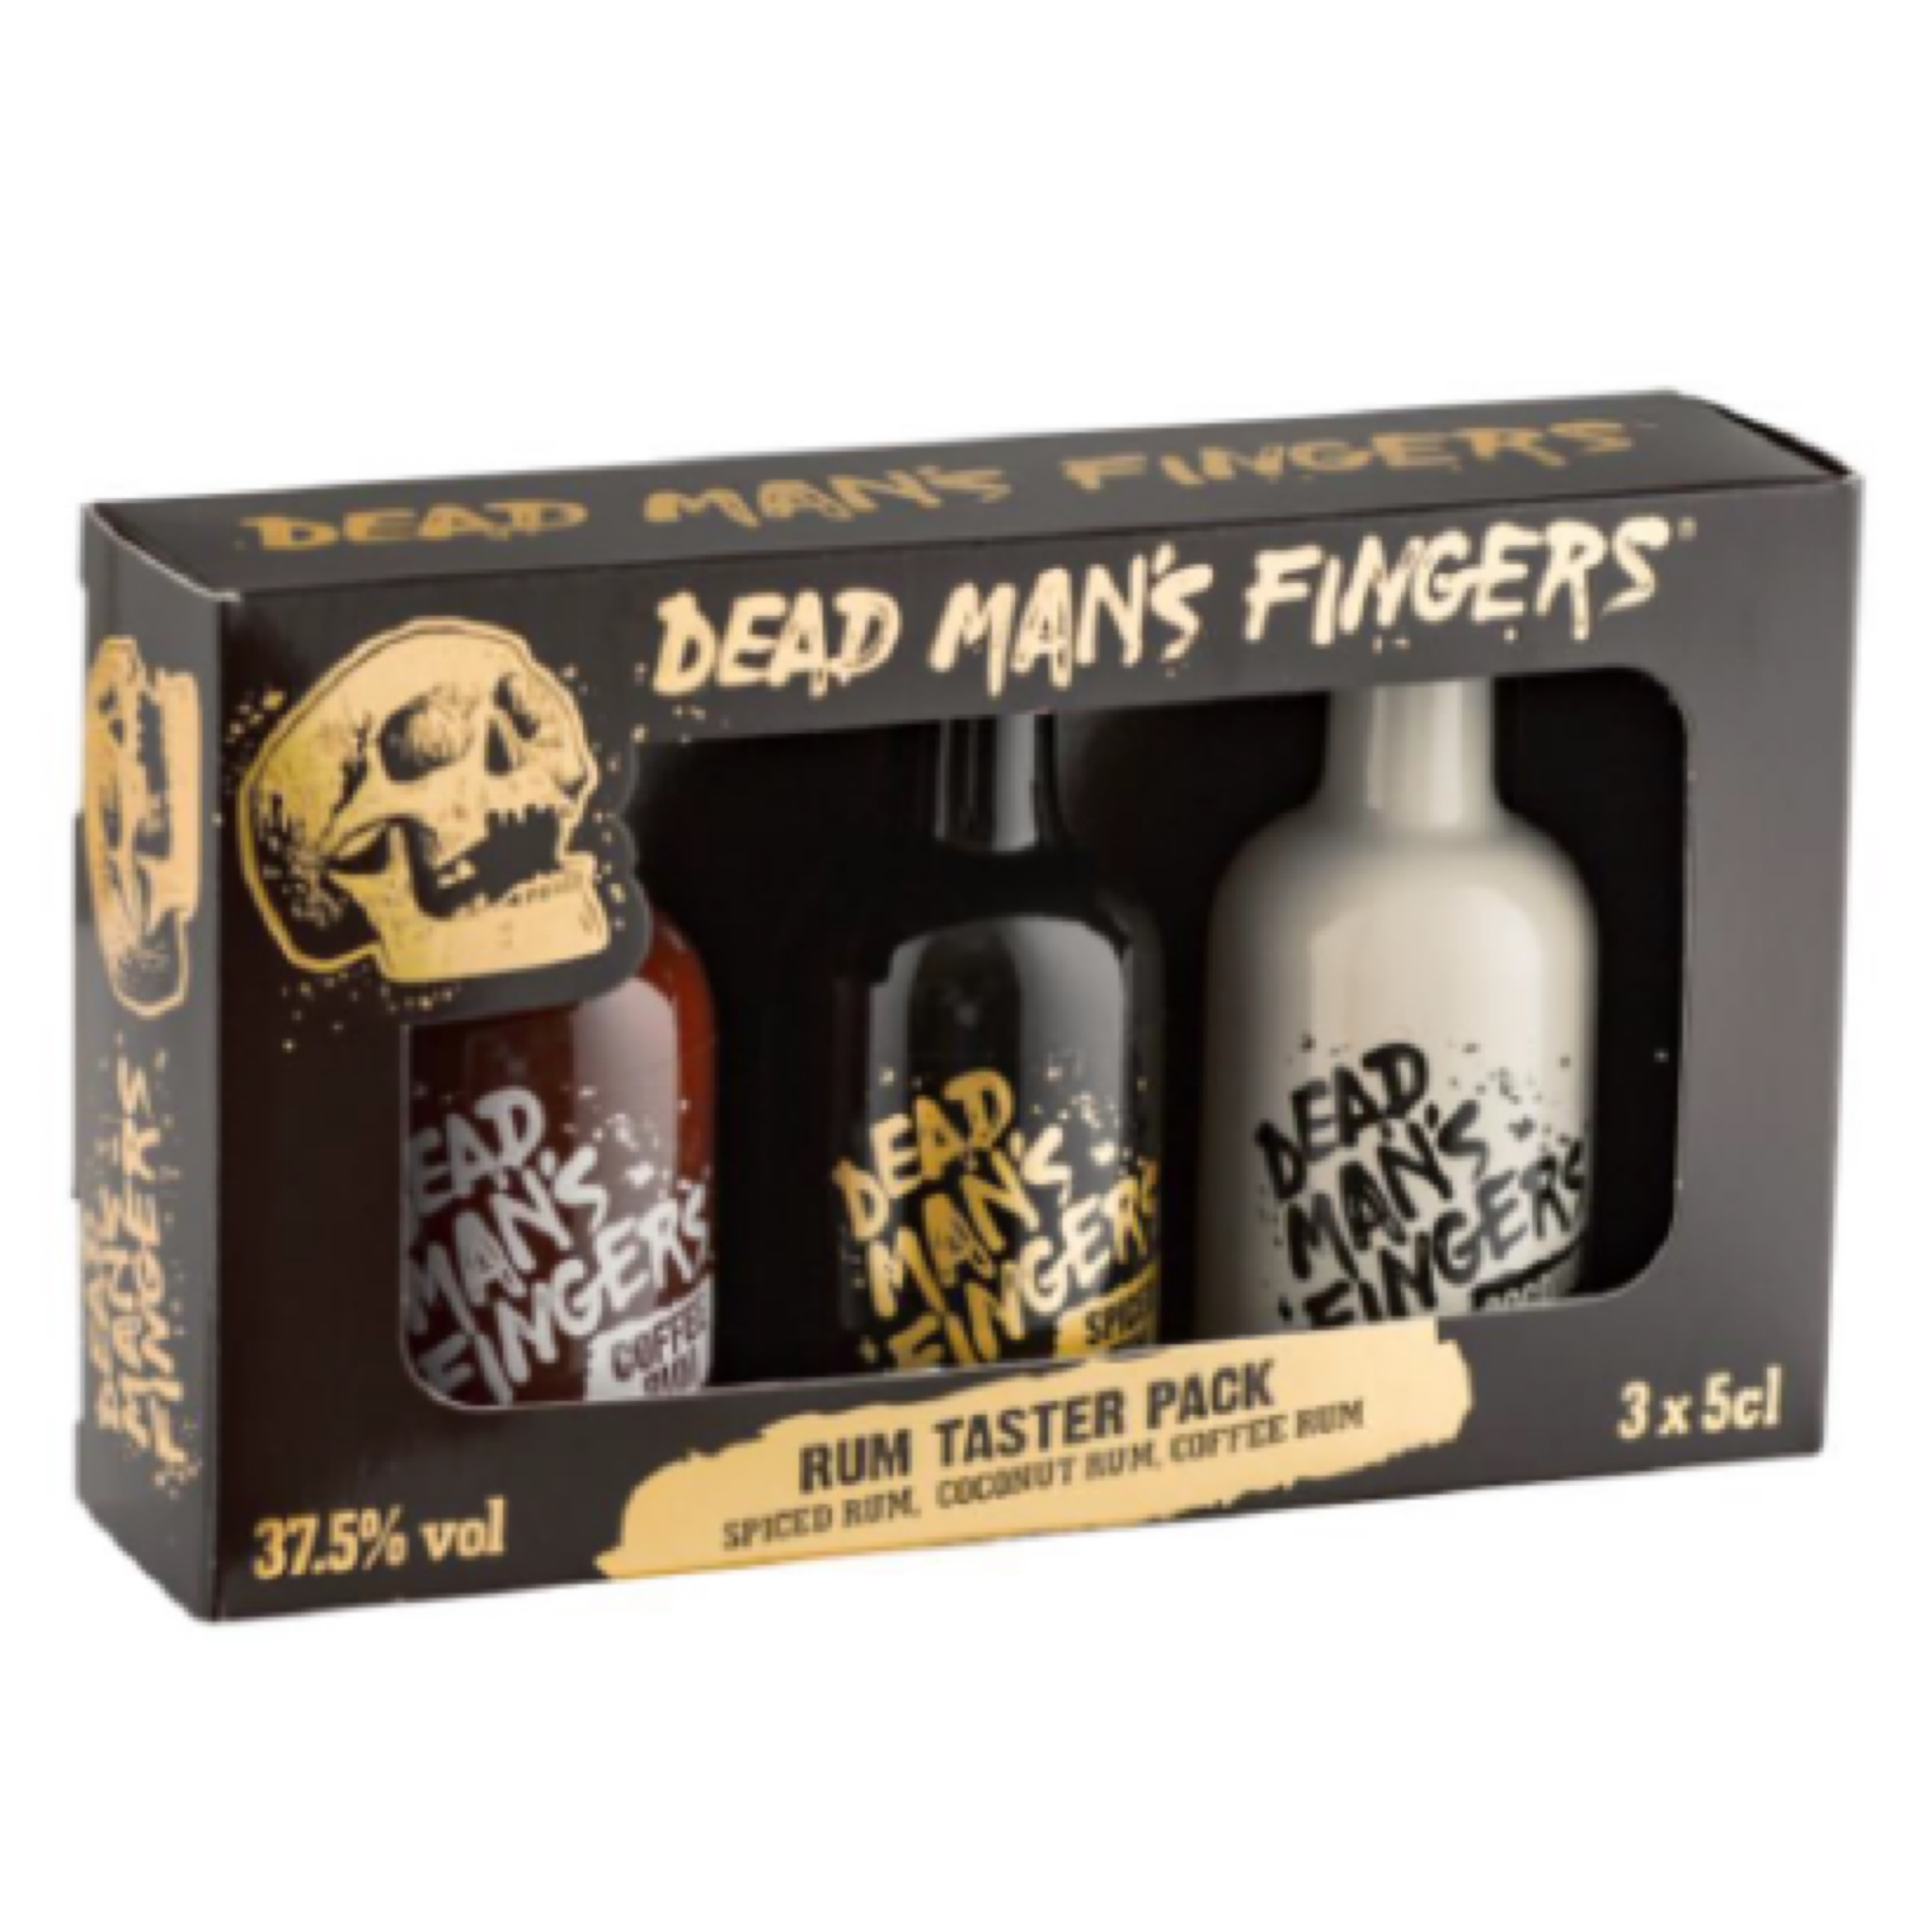 Dead Man's Fingers Rum Gift Pack 3 x 50ml 37.5% (150ml)